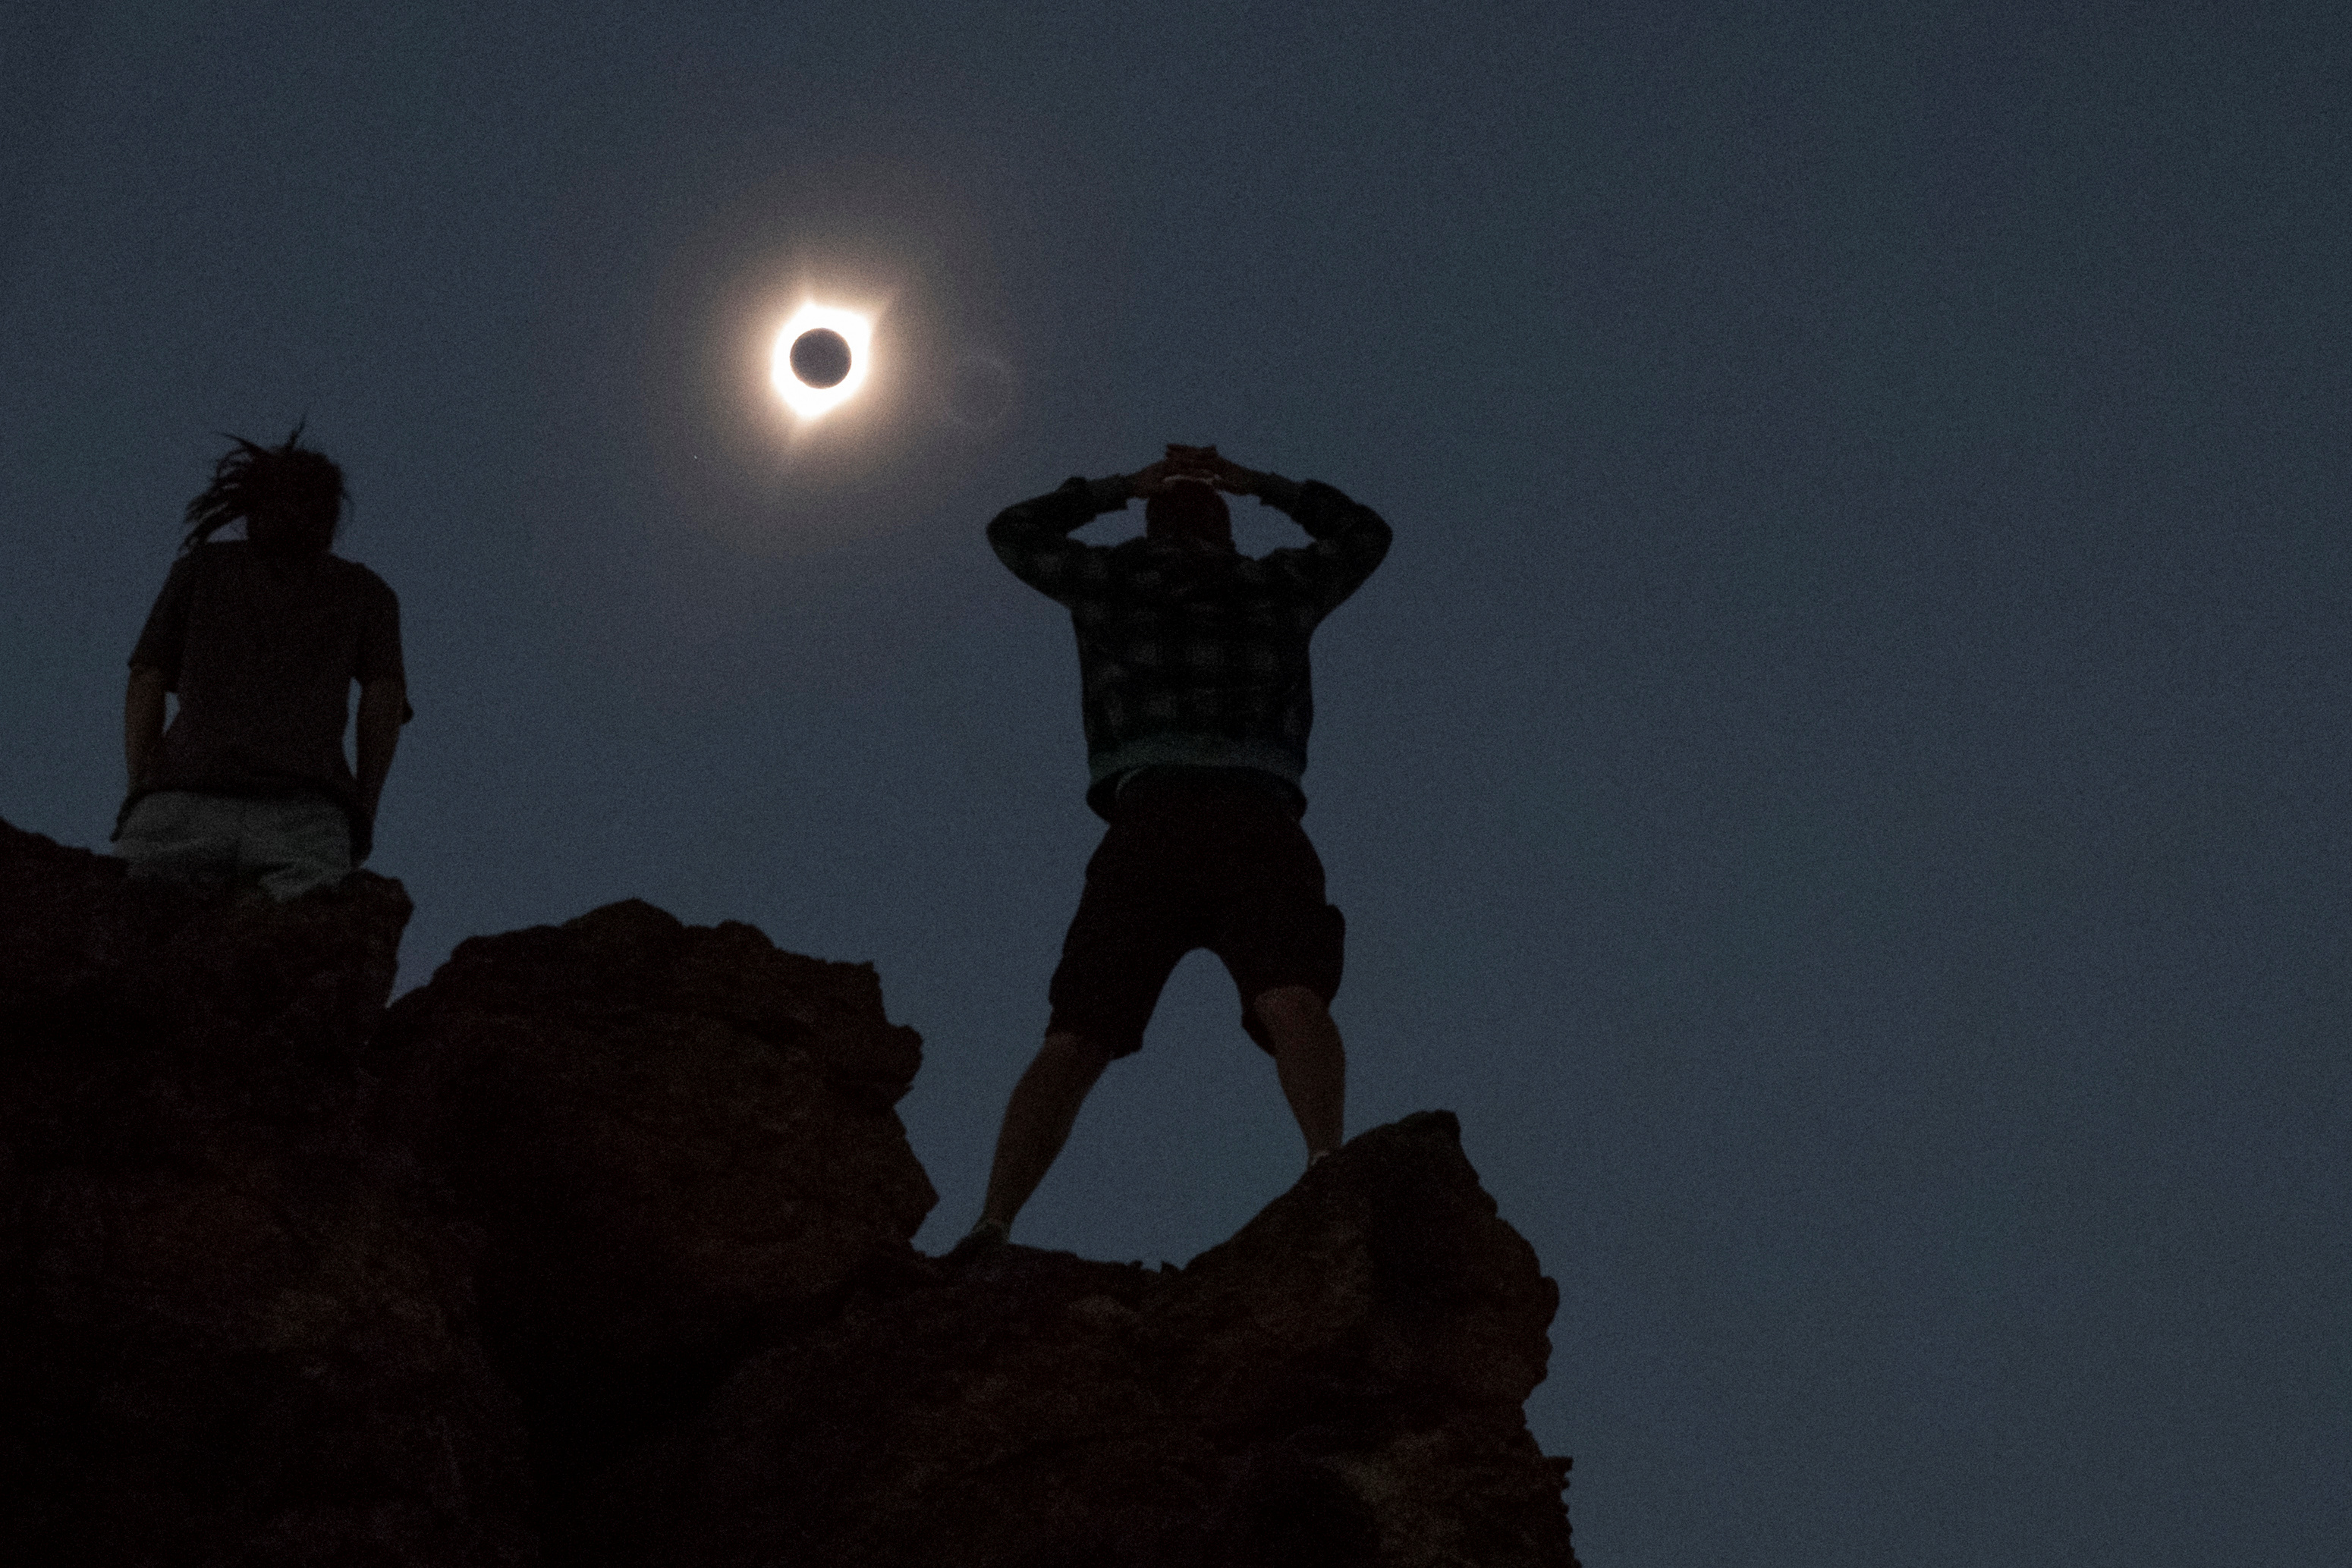 Enthusiasts Tanner Person (R) and Josh Blink, both from Vacaville, California, watch a total solar eclipse while standing atop Carroll Rim Trail at Painted Hills, a unit of the John Day Fossil Beds National Monument, near Mitchell, Oregon, U.S. August 21, 2017. Location coordinates for this image is near 44°39'117'' N 120°6'042'' W. REUTERS/Adrees Latif